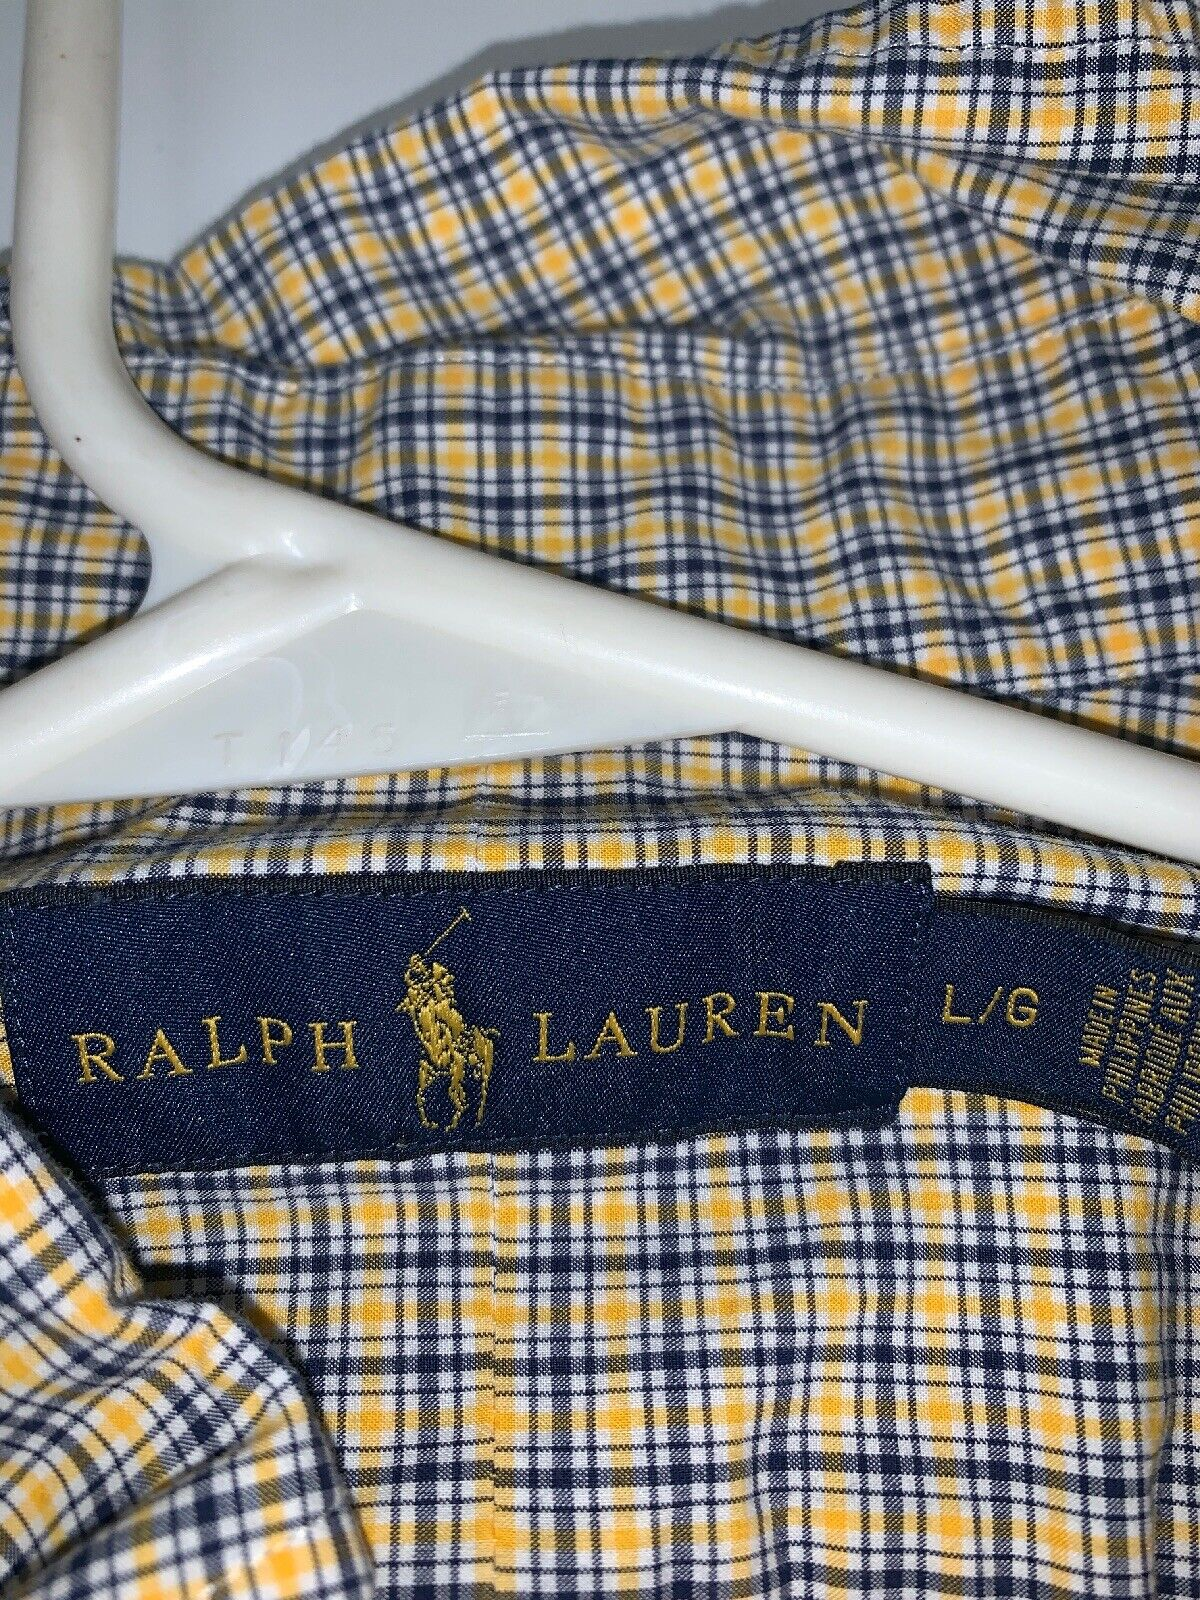 Ralph lauren long sleeve shirt Large